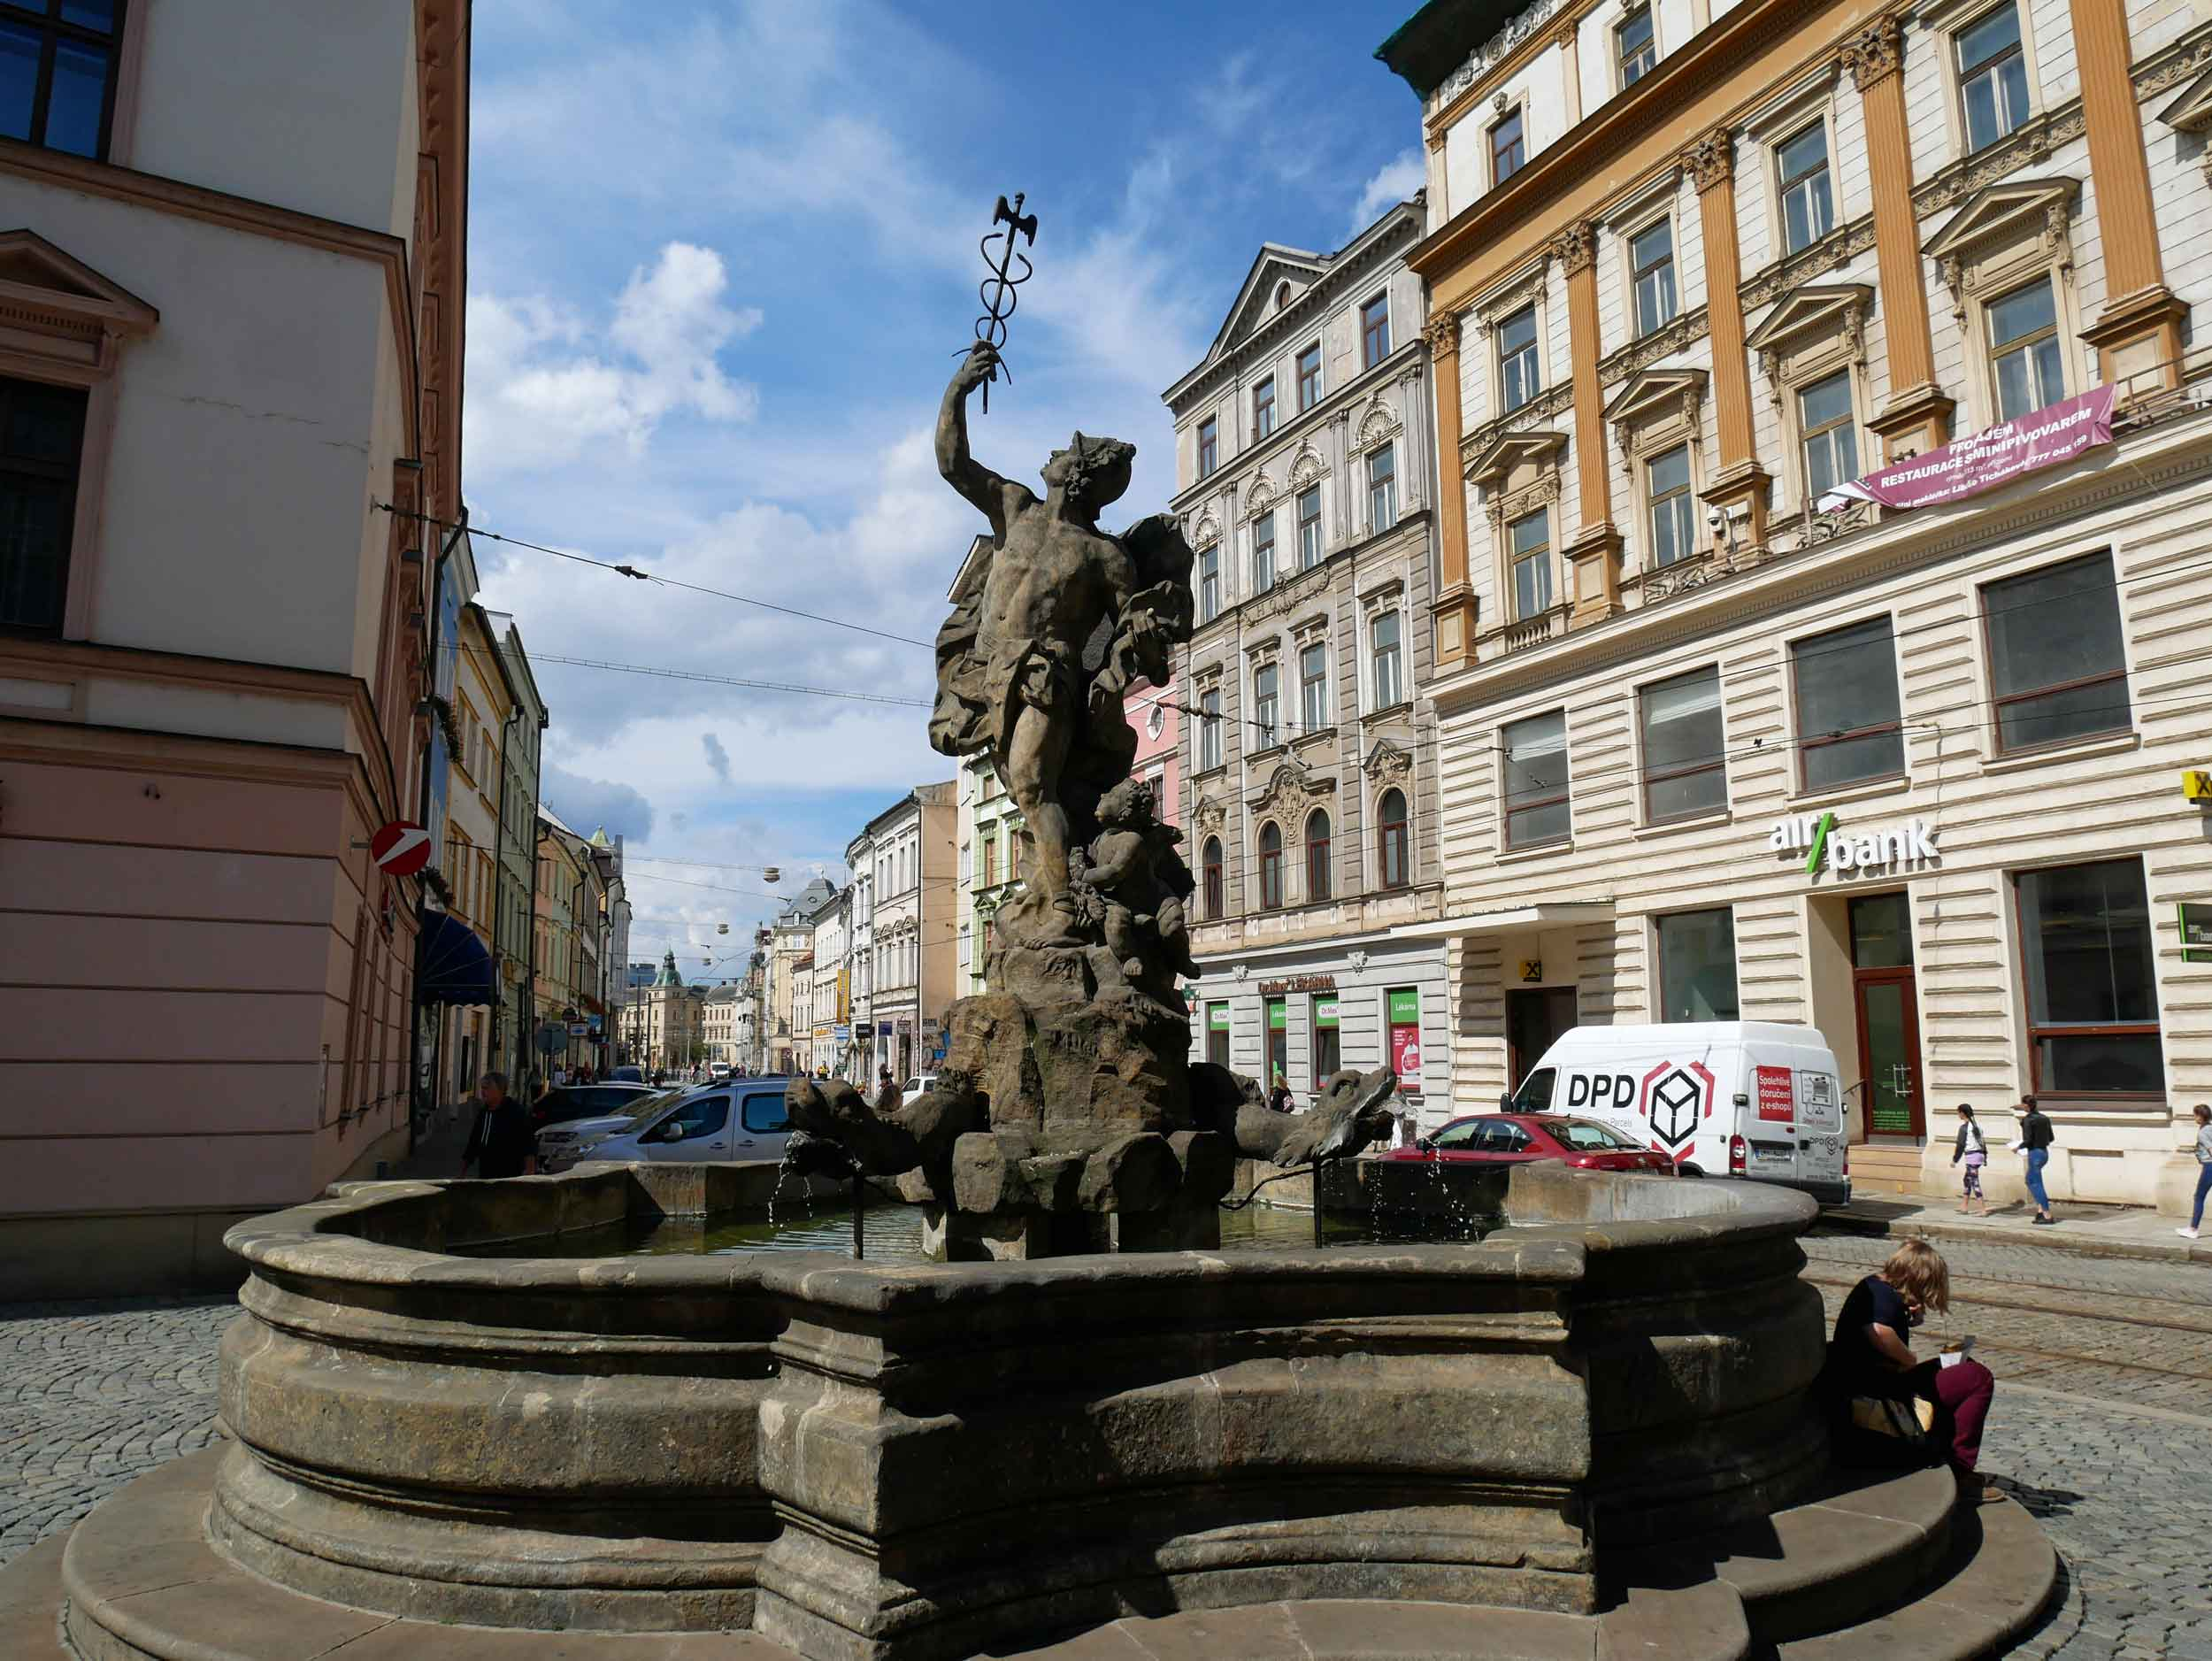 Beautiful Mercury Fountain (Merkurova kašna) was built in 1727 and one of several examples of Baroque fountains in Olomouc's historic centre.